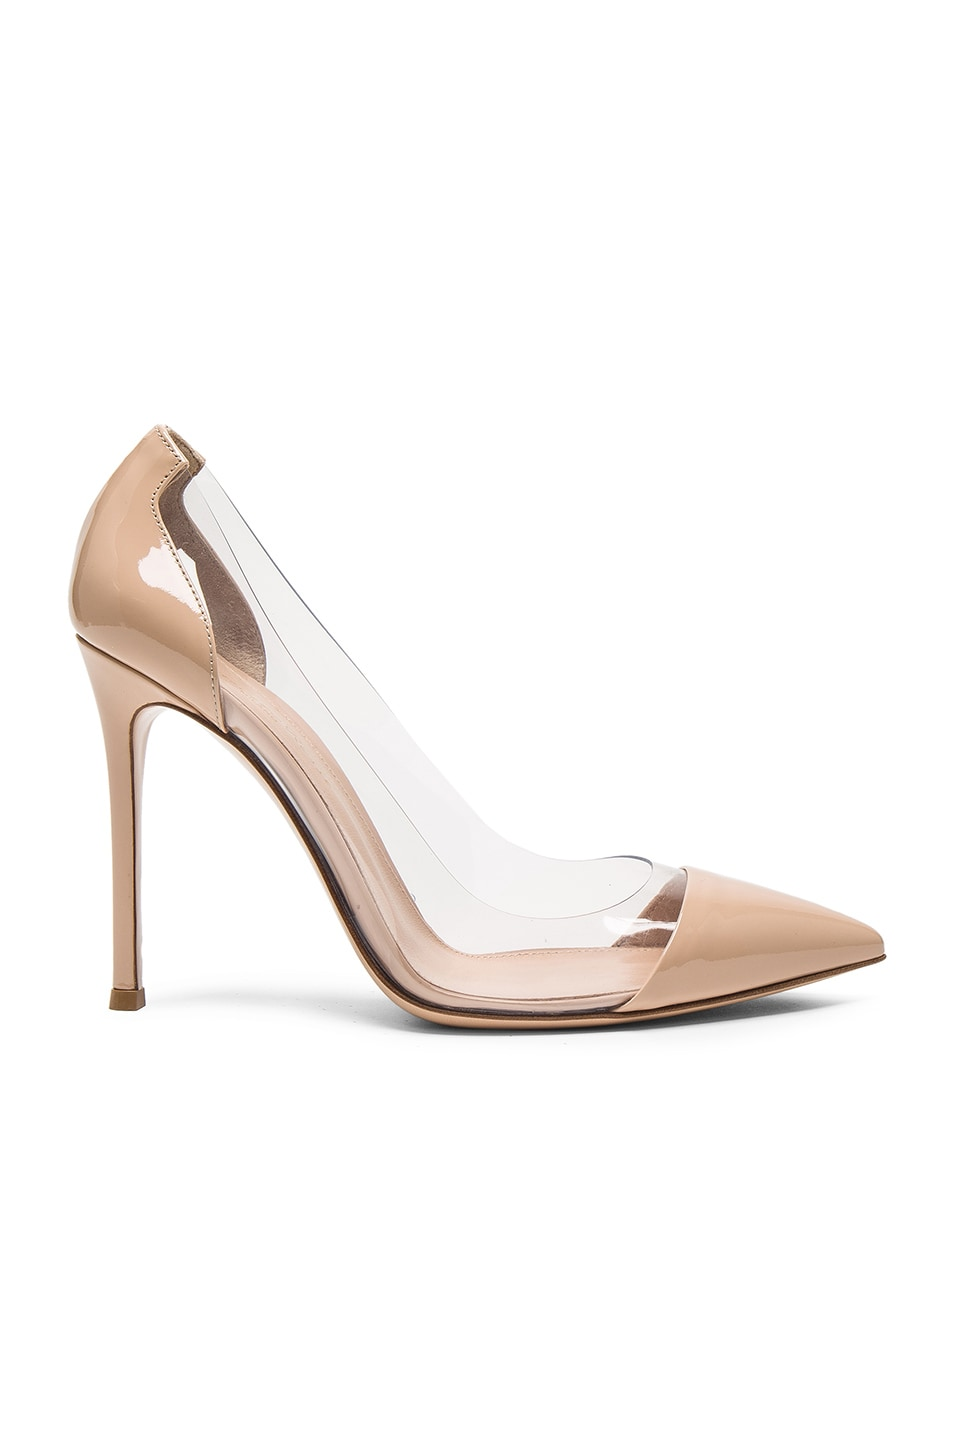 Gianvito Rossi Exclusive To Mytheresa.com - Plexi 85 Leather Pumps In Nude